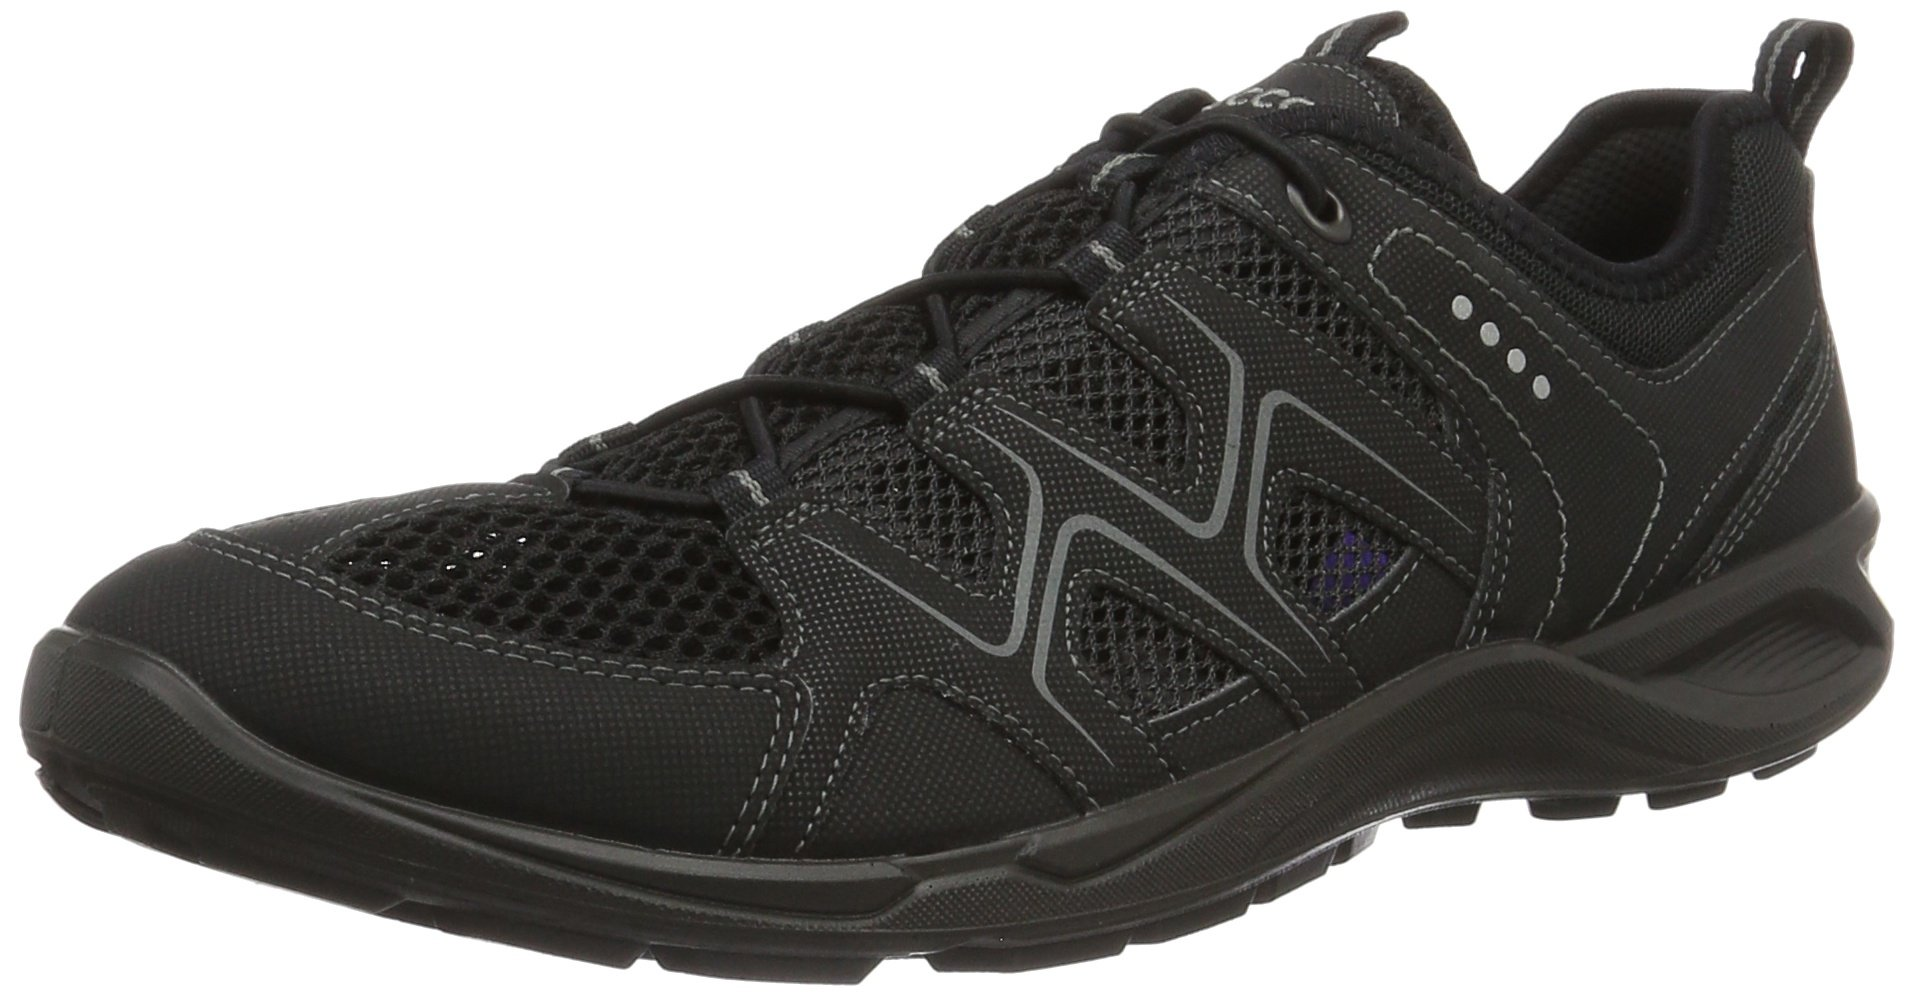 Multisport Outdoor FemmeNoir Eu TerracruiseChaussures Ecco Black36 0wPnk8O